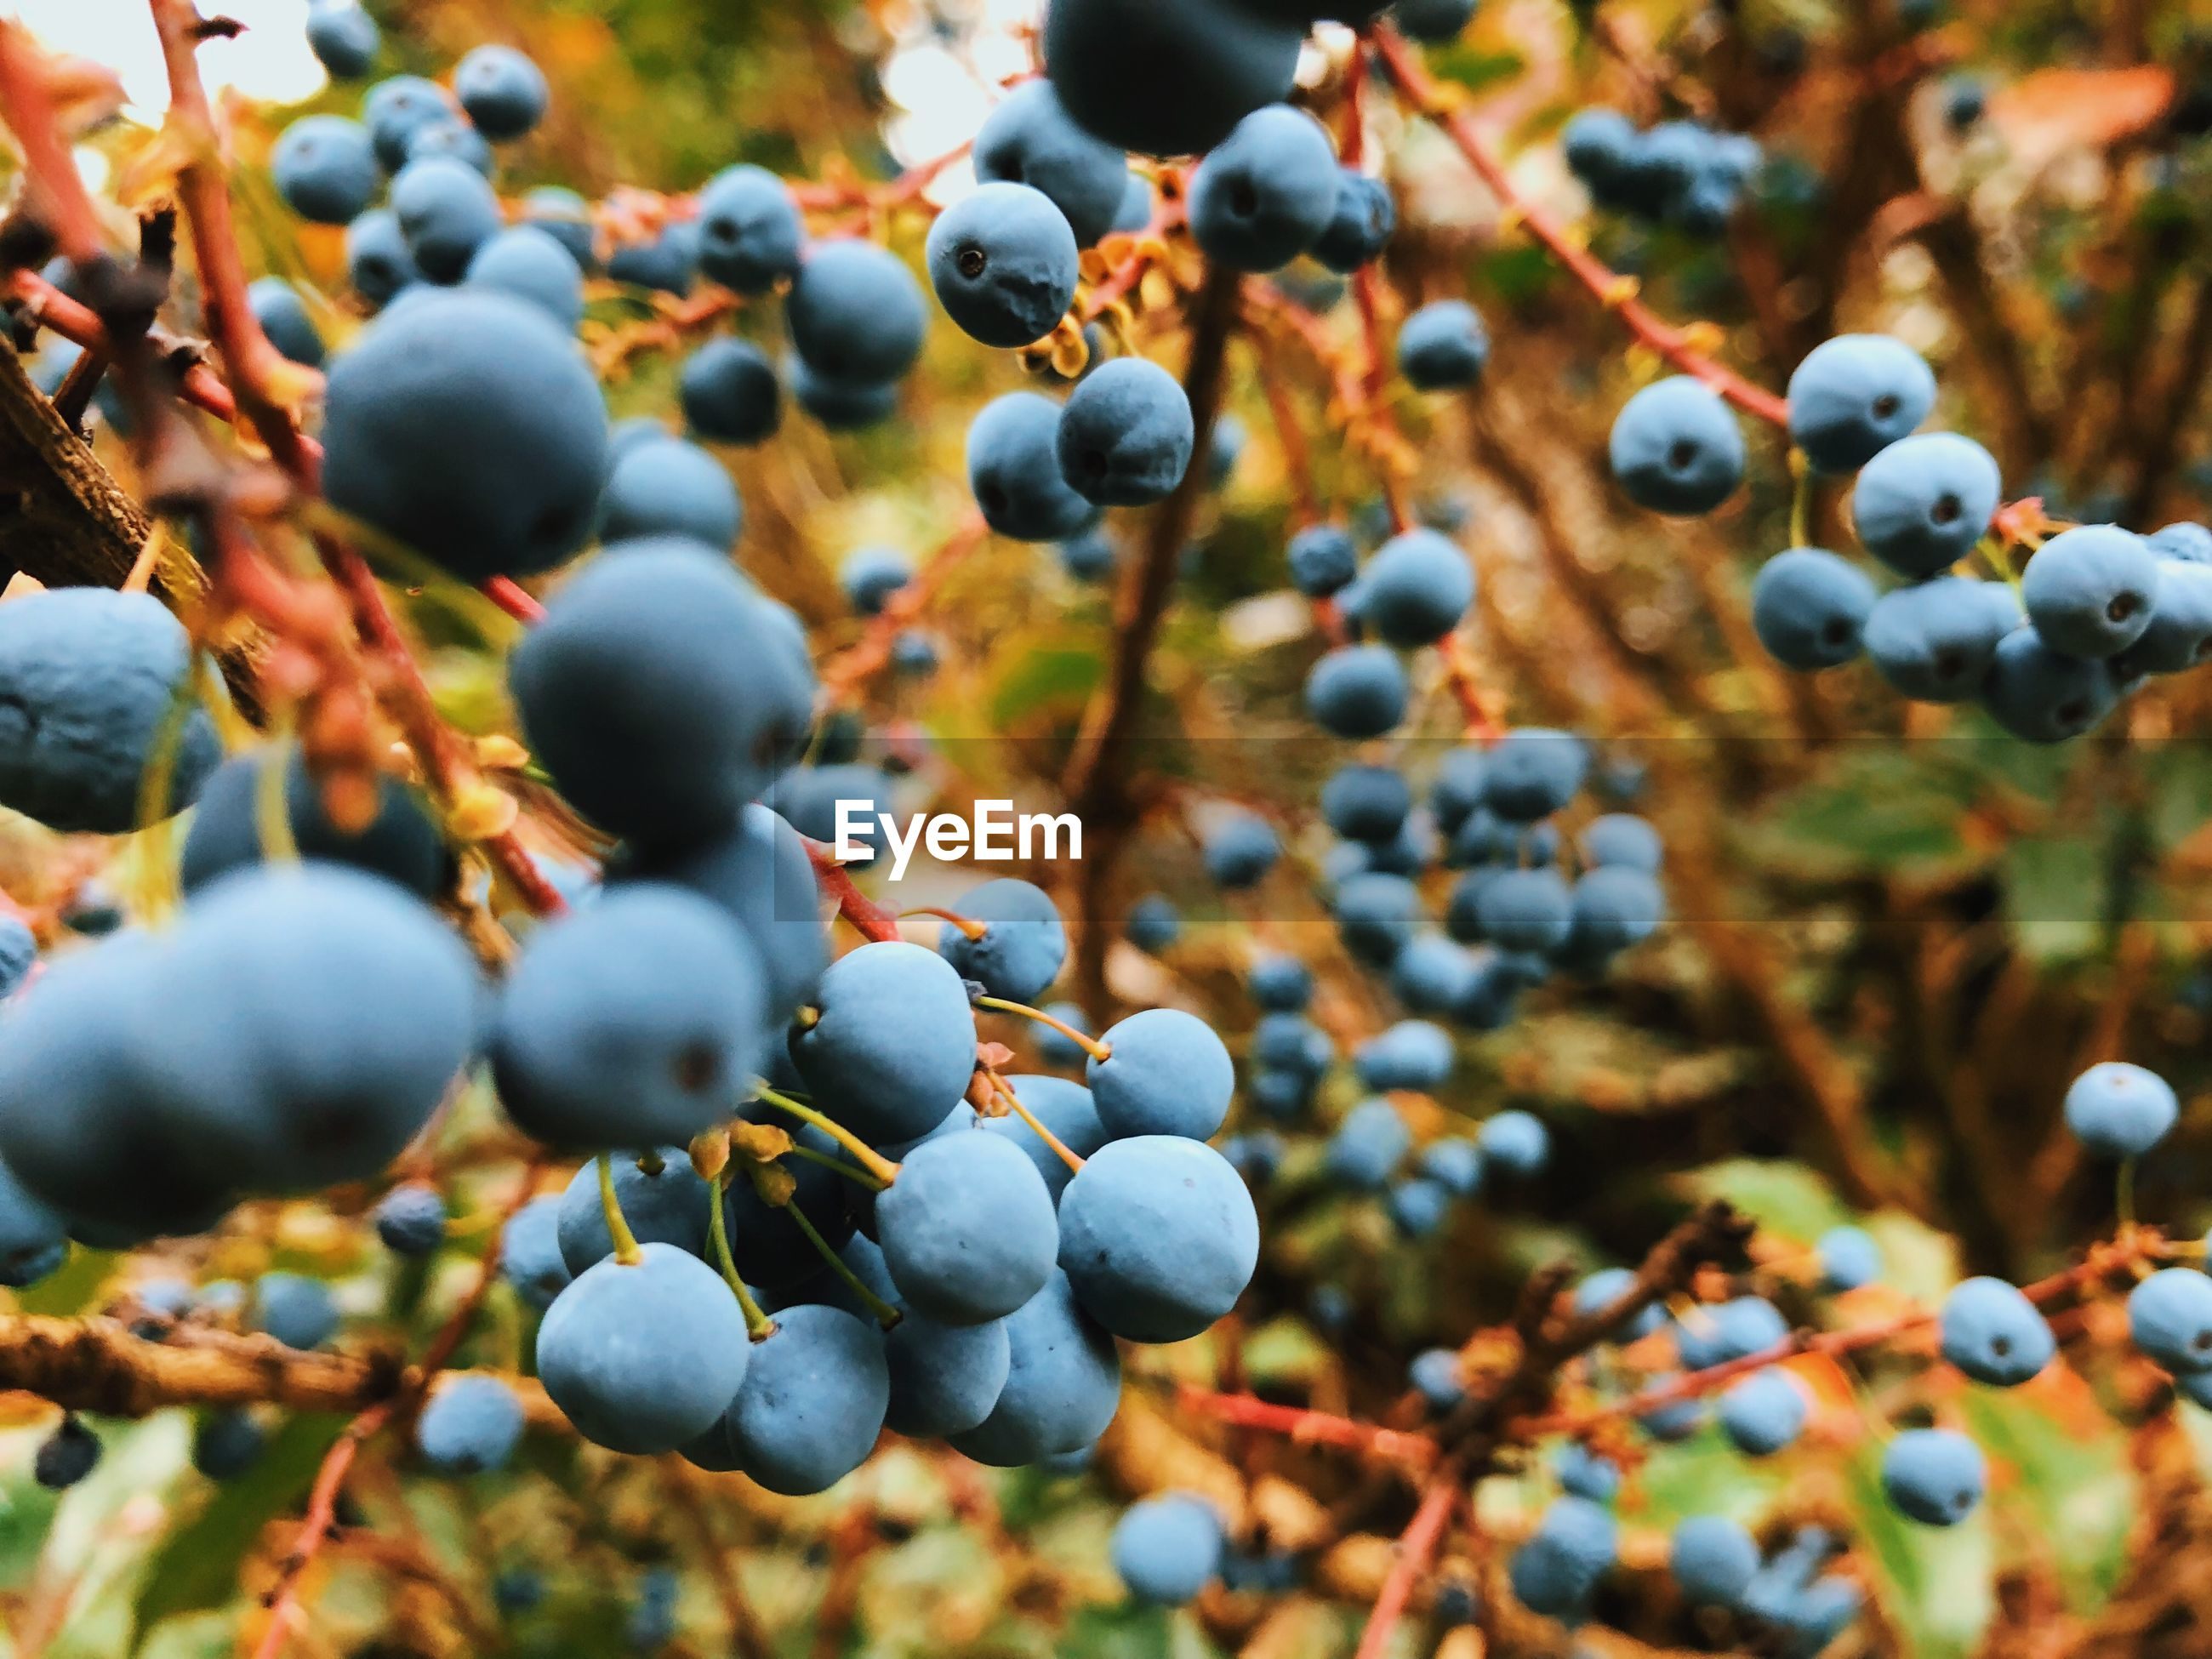 Close-up of berries growing on land